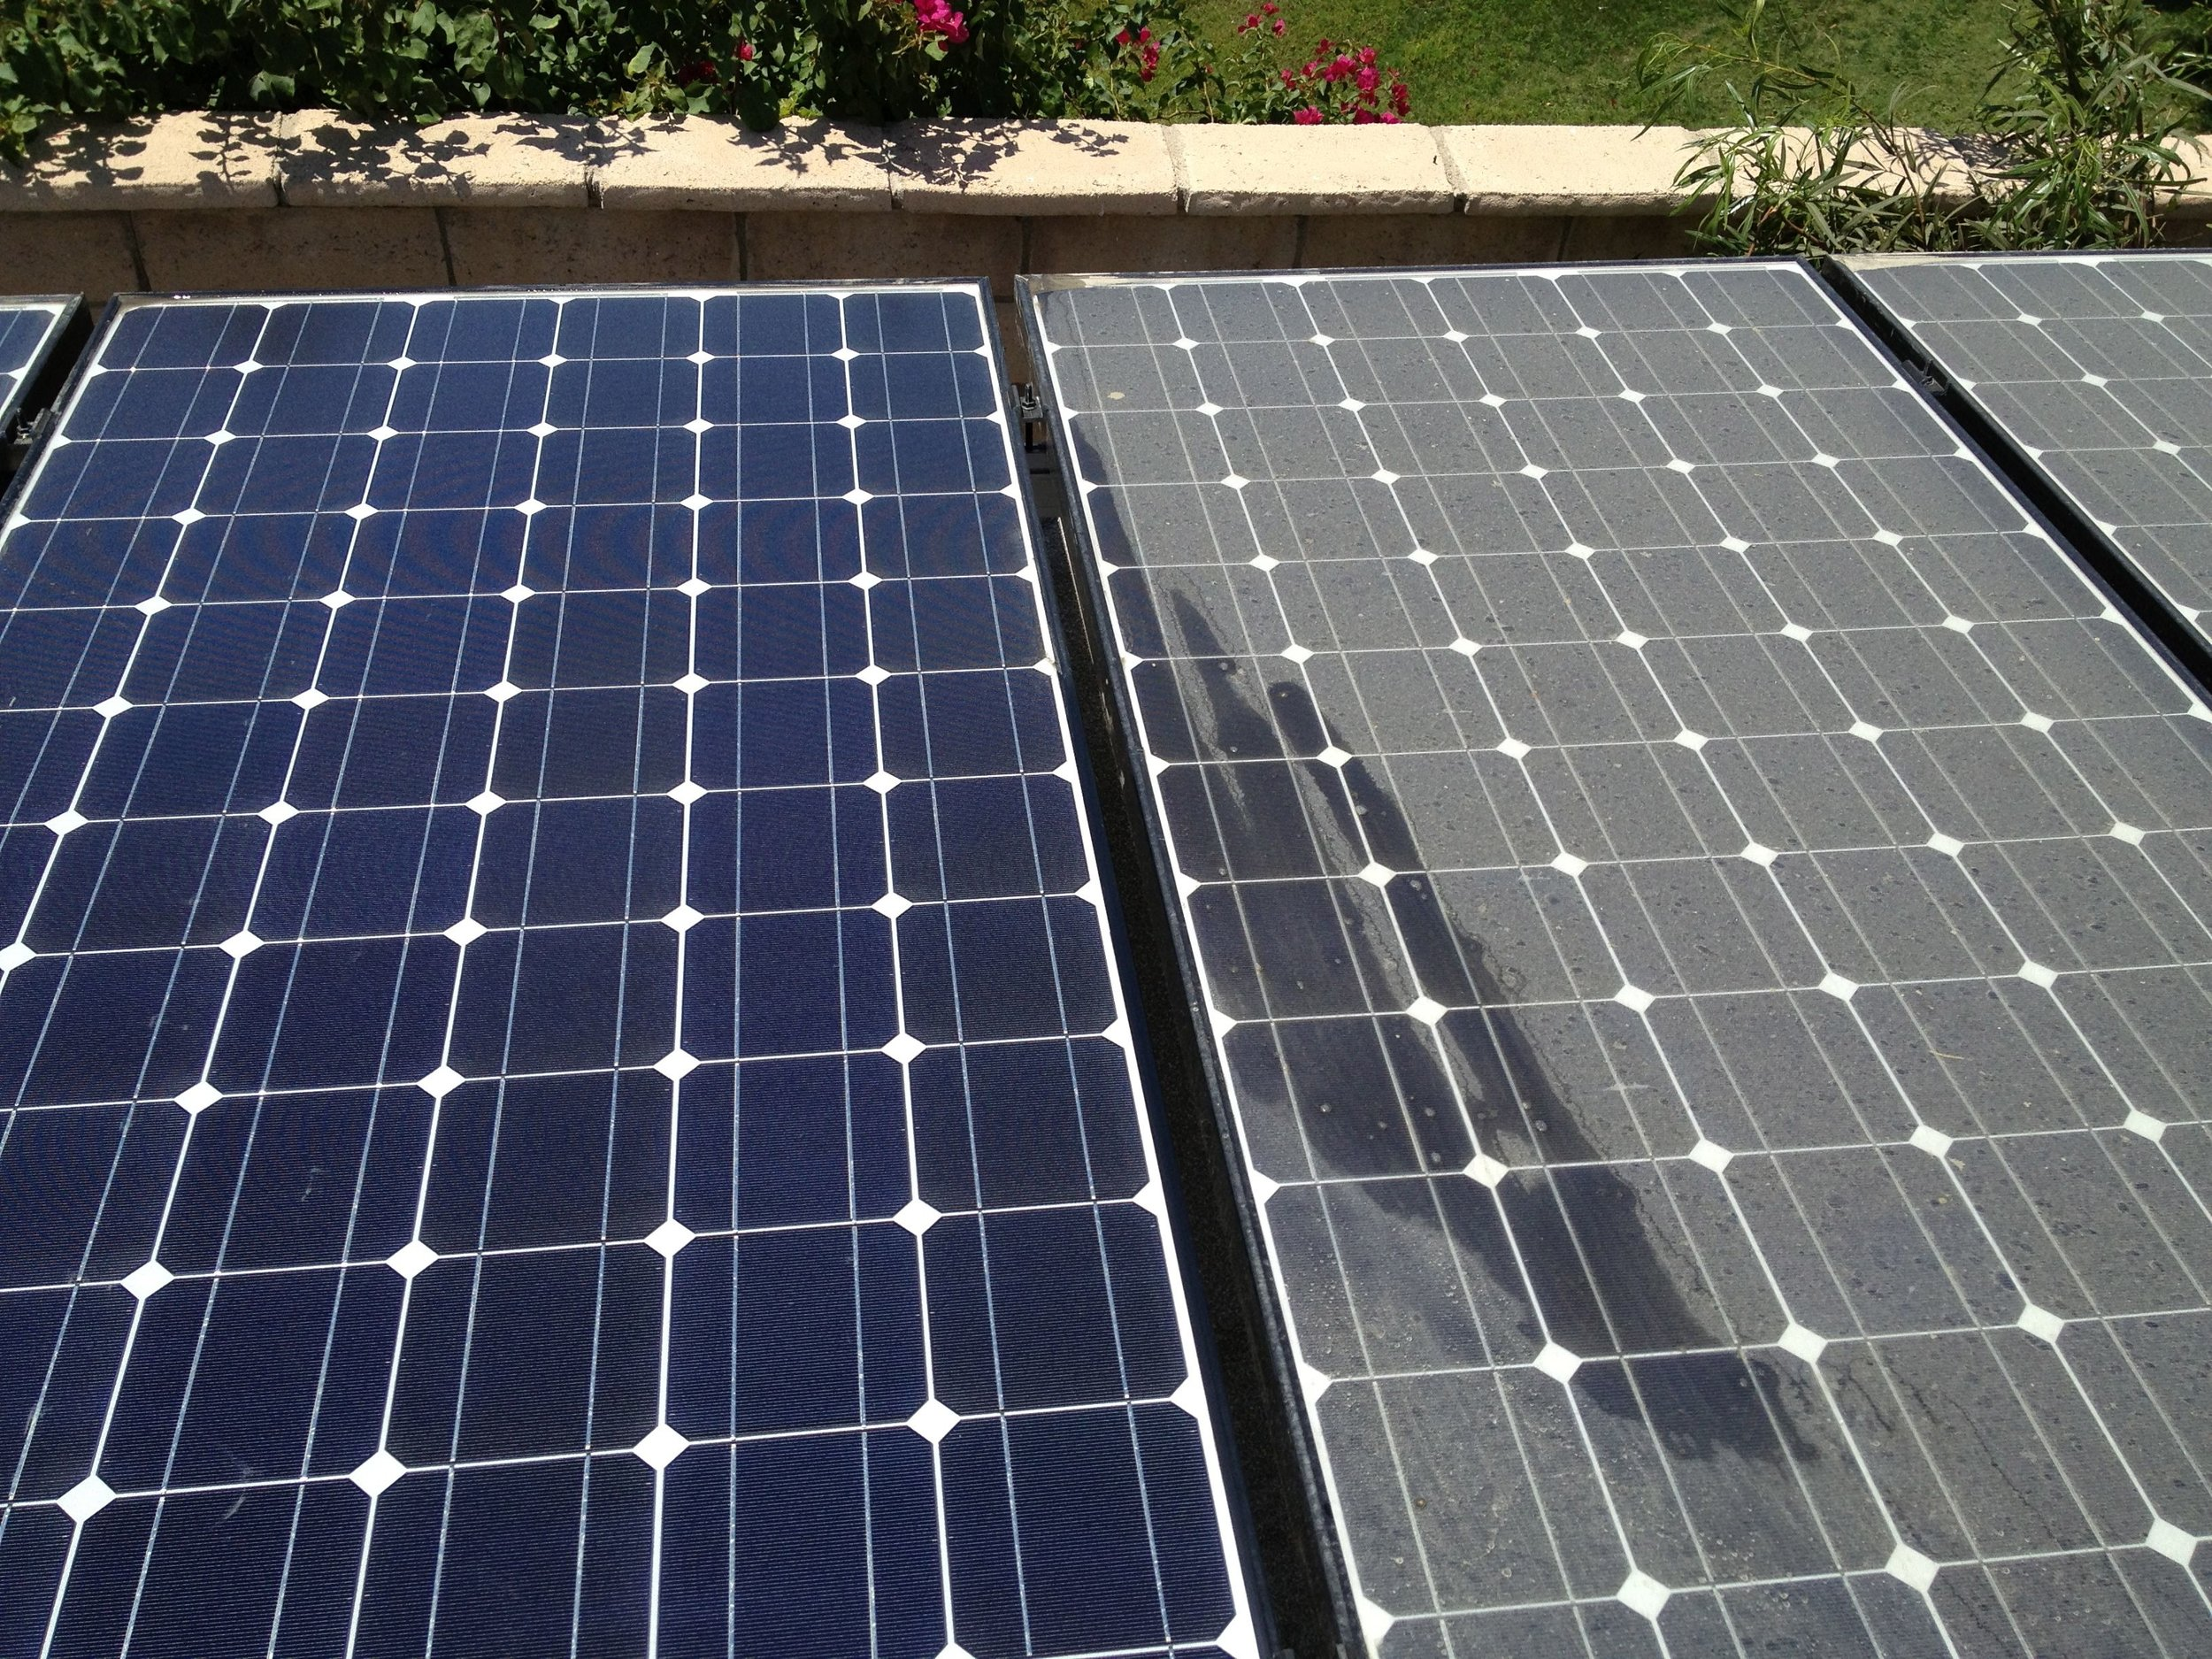 Solar Panel Cleaning - Dirty solar panels can Decrease efficiency by up to 30% according to recent studies. You installed solar panels to Save Money so don't miss out on that power you could be collecting!GET A FREE QUOTE ➝